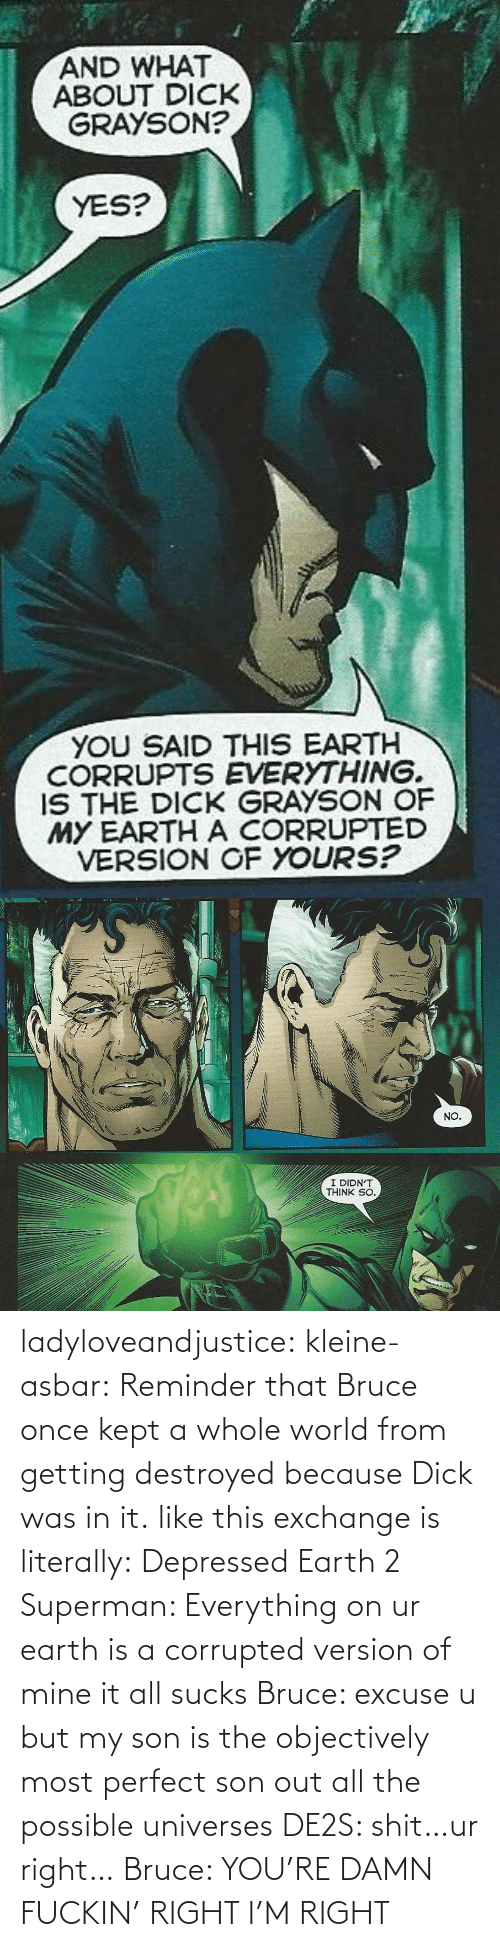 It All: ladyloveandjustice:  kleine-asbar: Reminder that Bruce once kept a whole world from getting destroyed because Dick was in it. like this exchange is literally: Depressed Earth 2 Superman: Everything on ur earth is a corrupted version of mine it all sucks Bruce: excuse u but my son is the objectively most perfect son out all the possible universes DE2S: shit…ur right… Bruce: YOU'RE DAMN FUCKIN' RIGHT I'M RIGHT